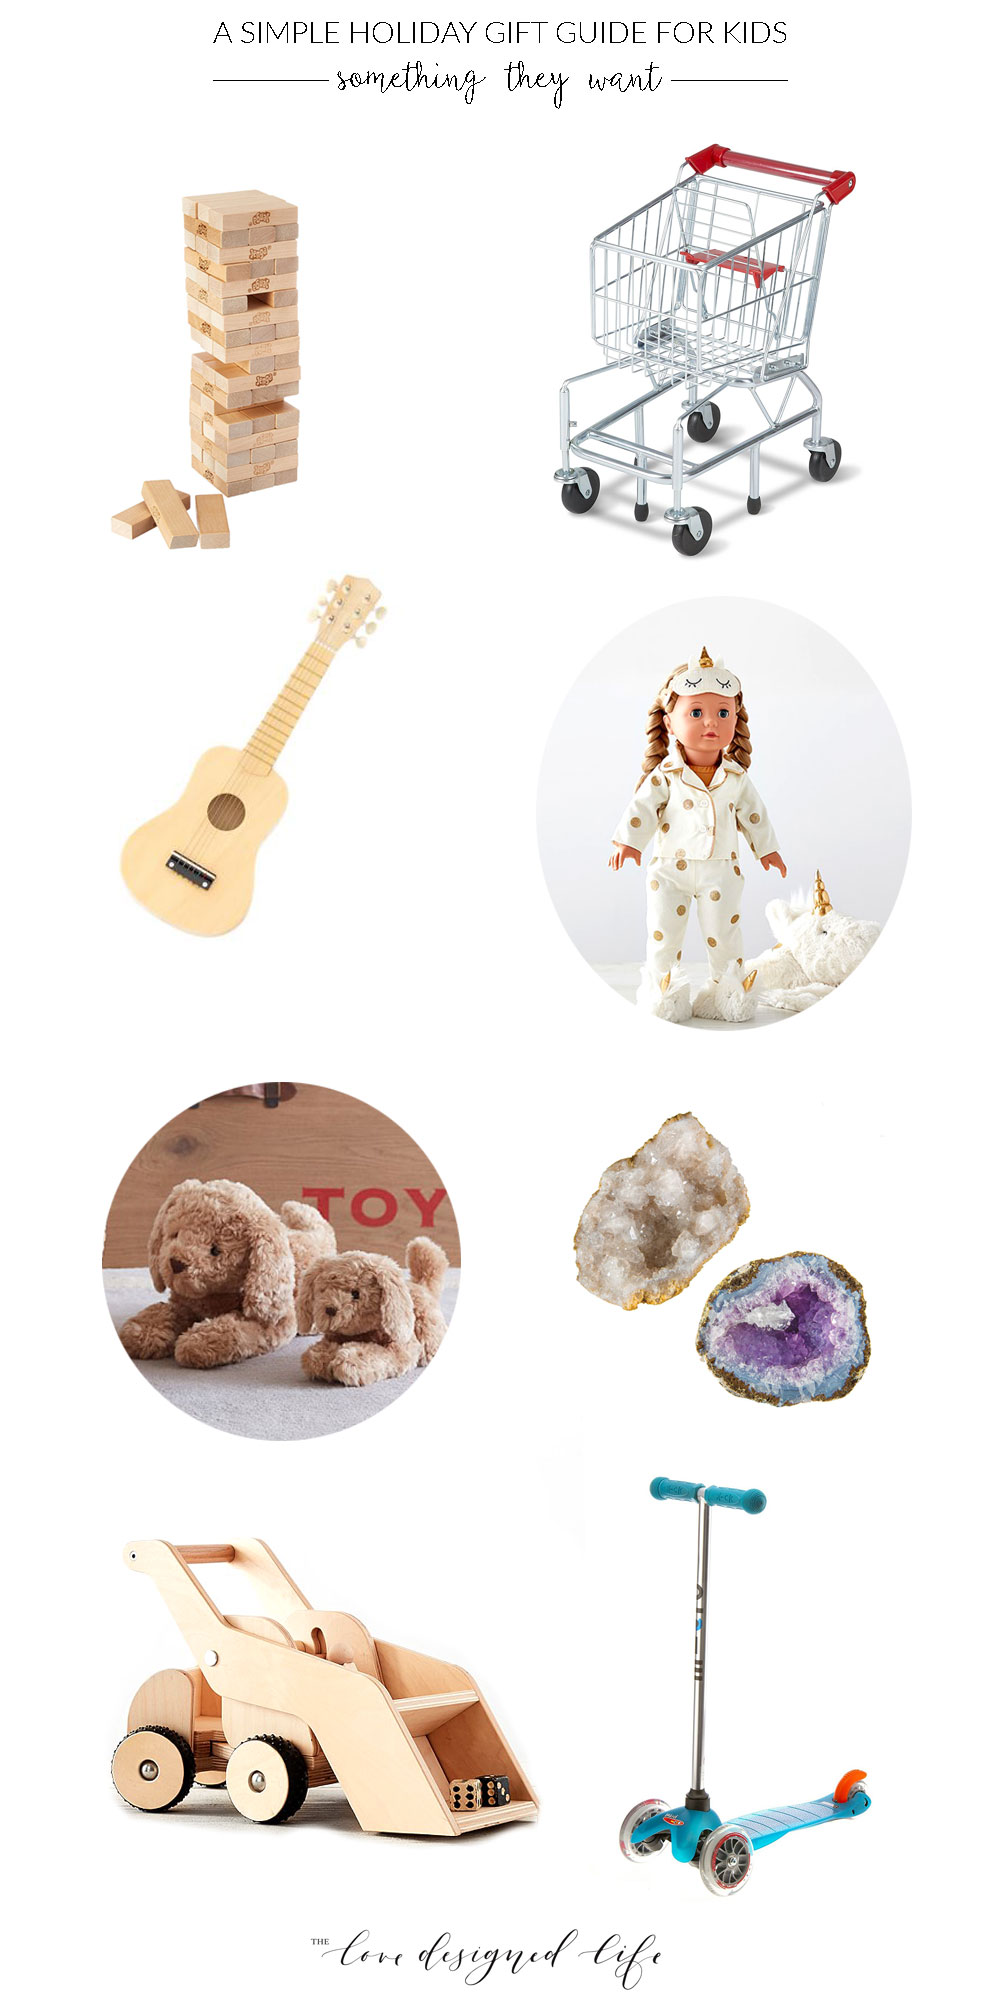 a simple holiday gift guide for kids - something they want | thelovedesignedlife.com